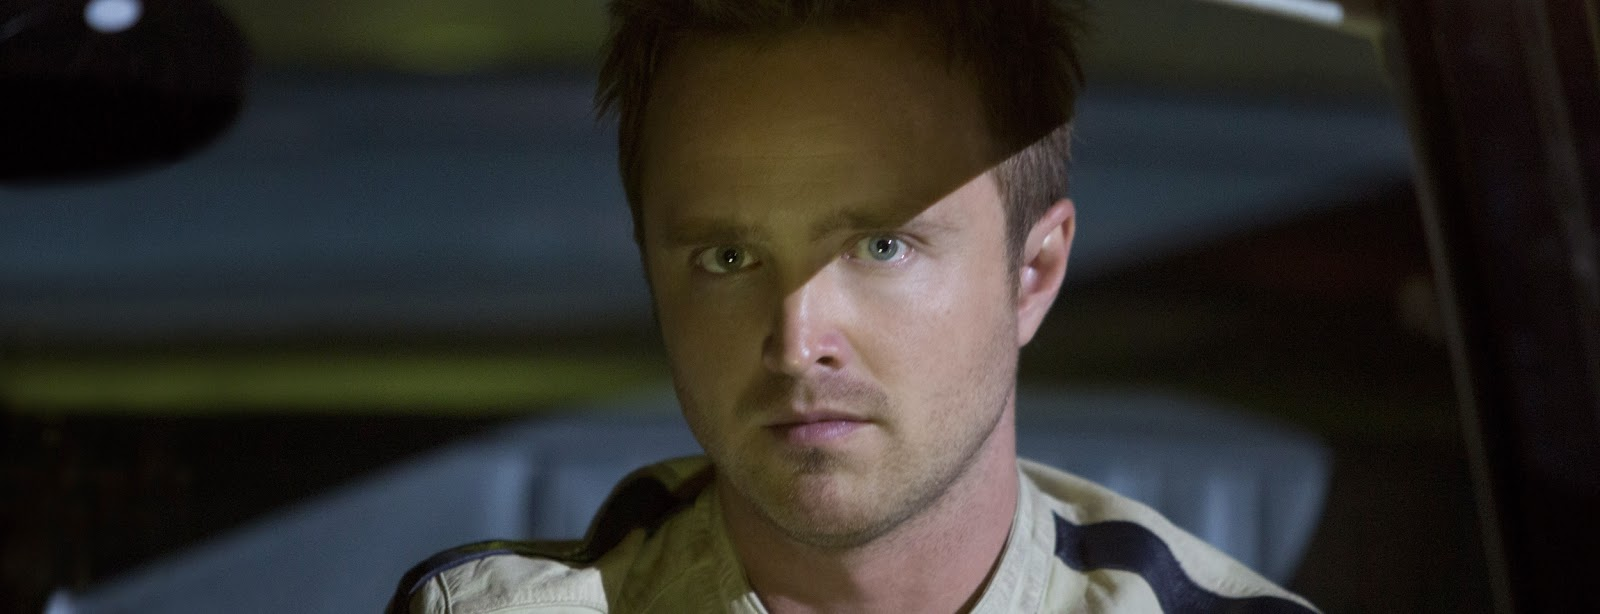 Aaron Paul atrás do volante nos featurettes da adaptação para os cinemas de NEED FOR SPEED